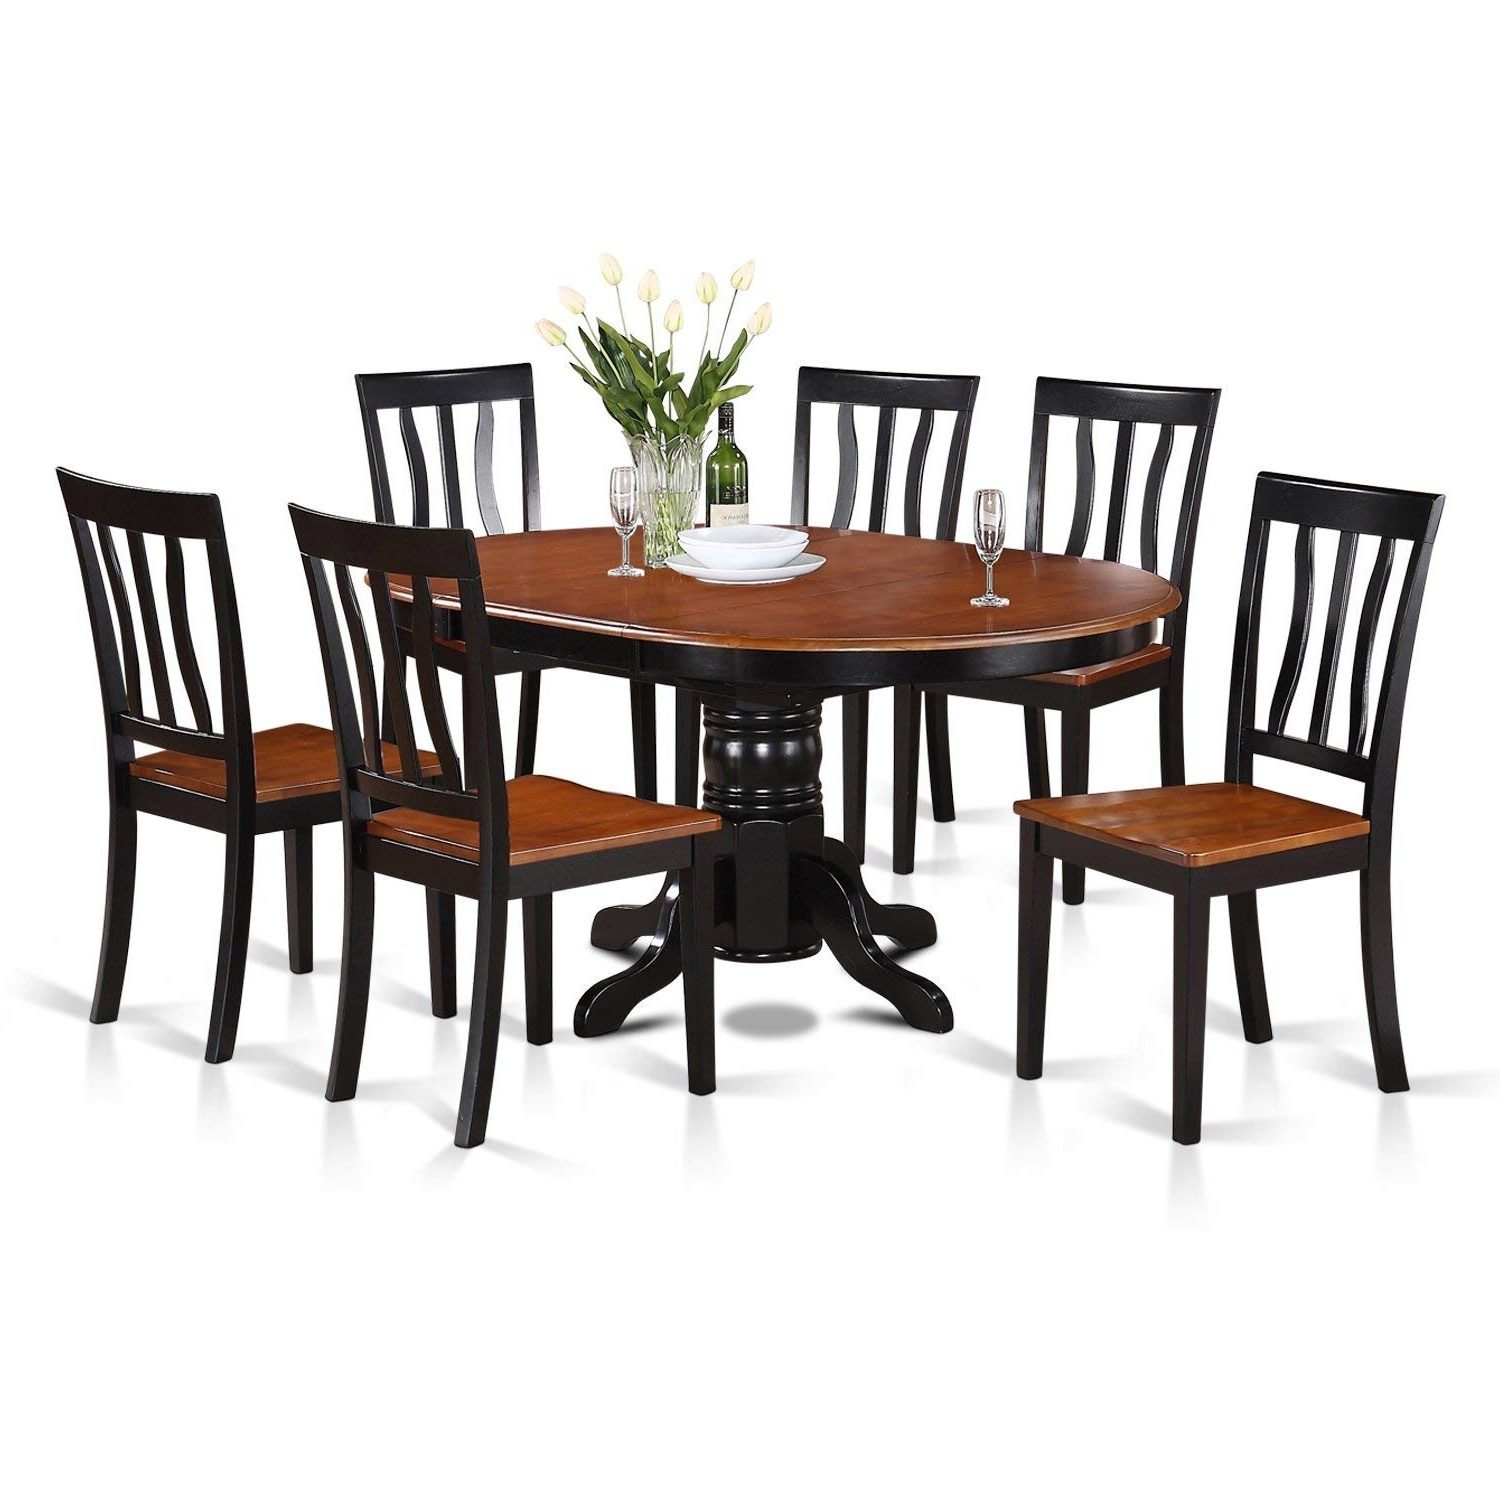 Dining Table Sets Pertaining To Most Recently Released Amazon: East West Furniture Avat7 Blk W 7 Piece Dining Table Set (Gallery 4 of 25)